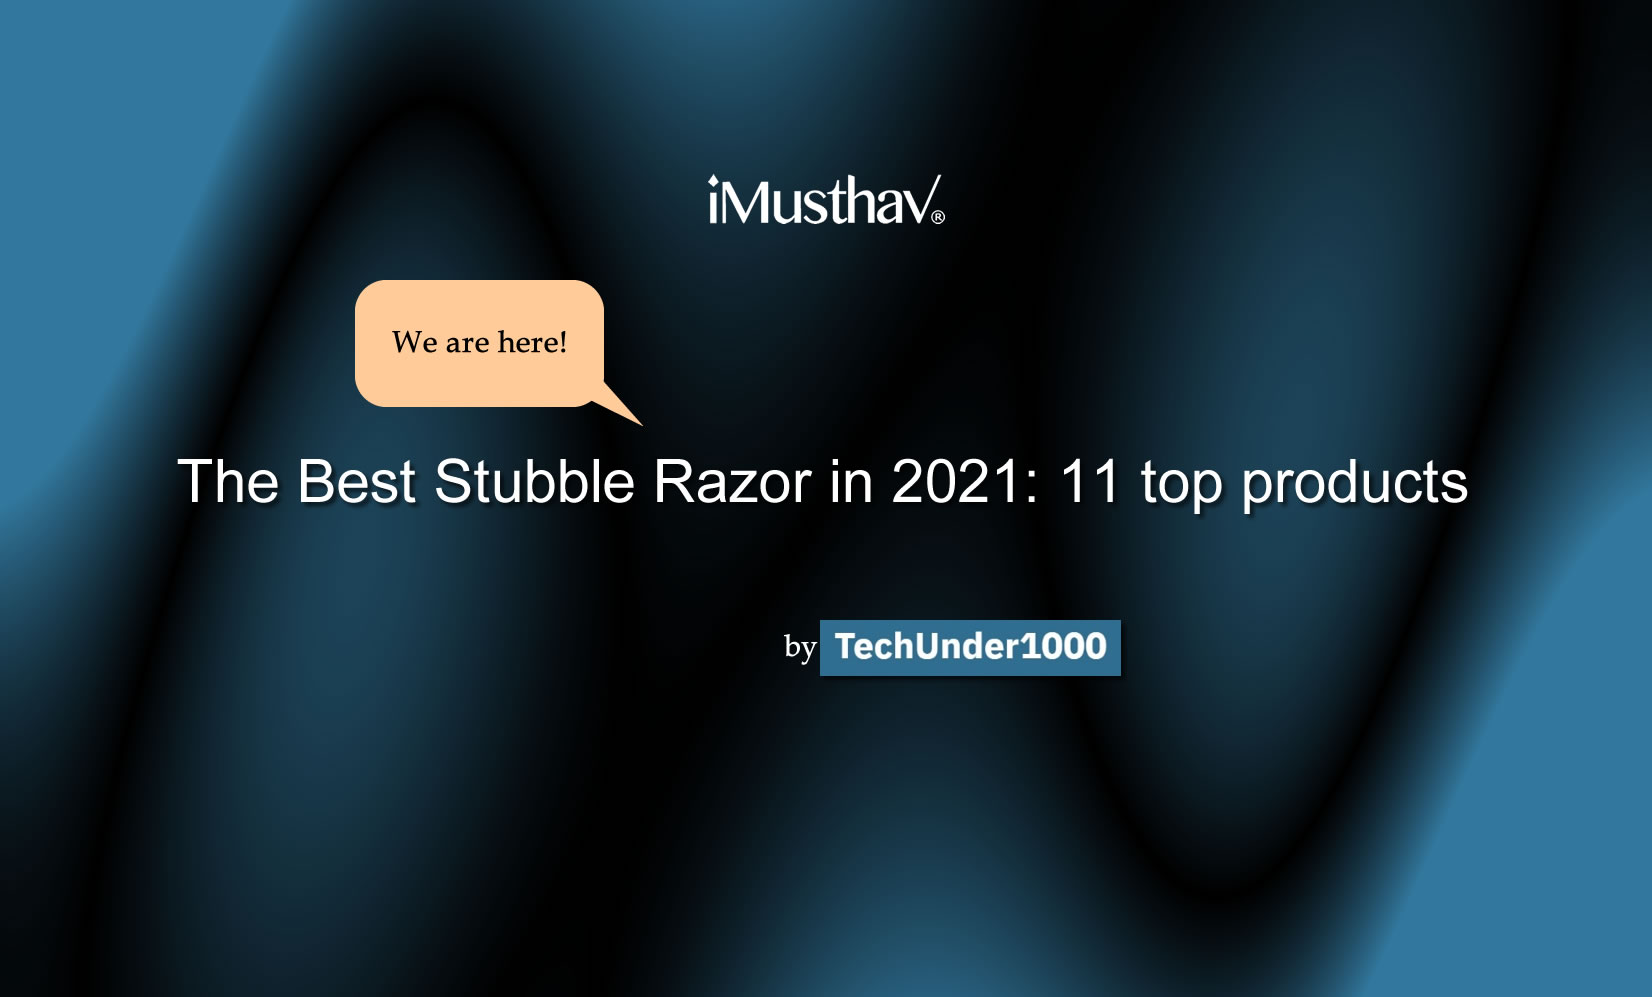 iMusthav® product be the No.1 of The Best Stubble Razor in 2021